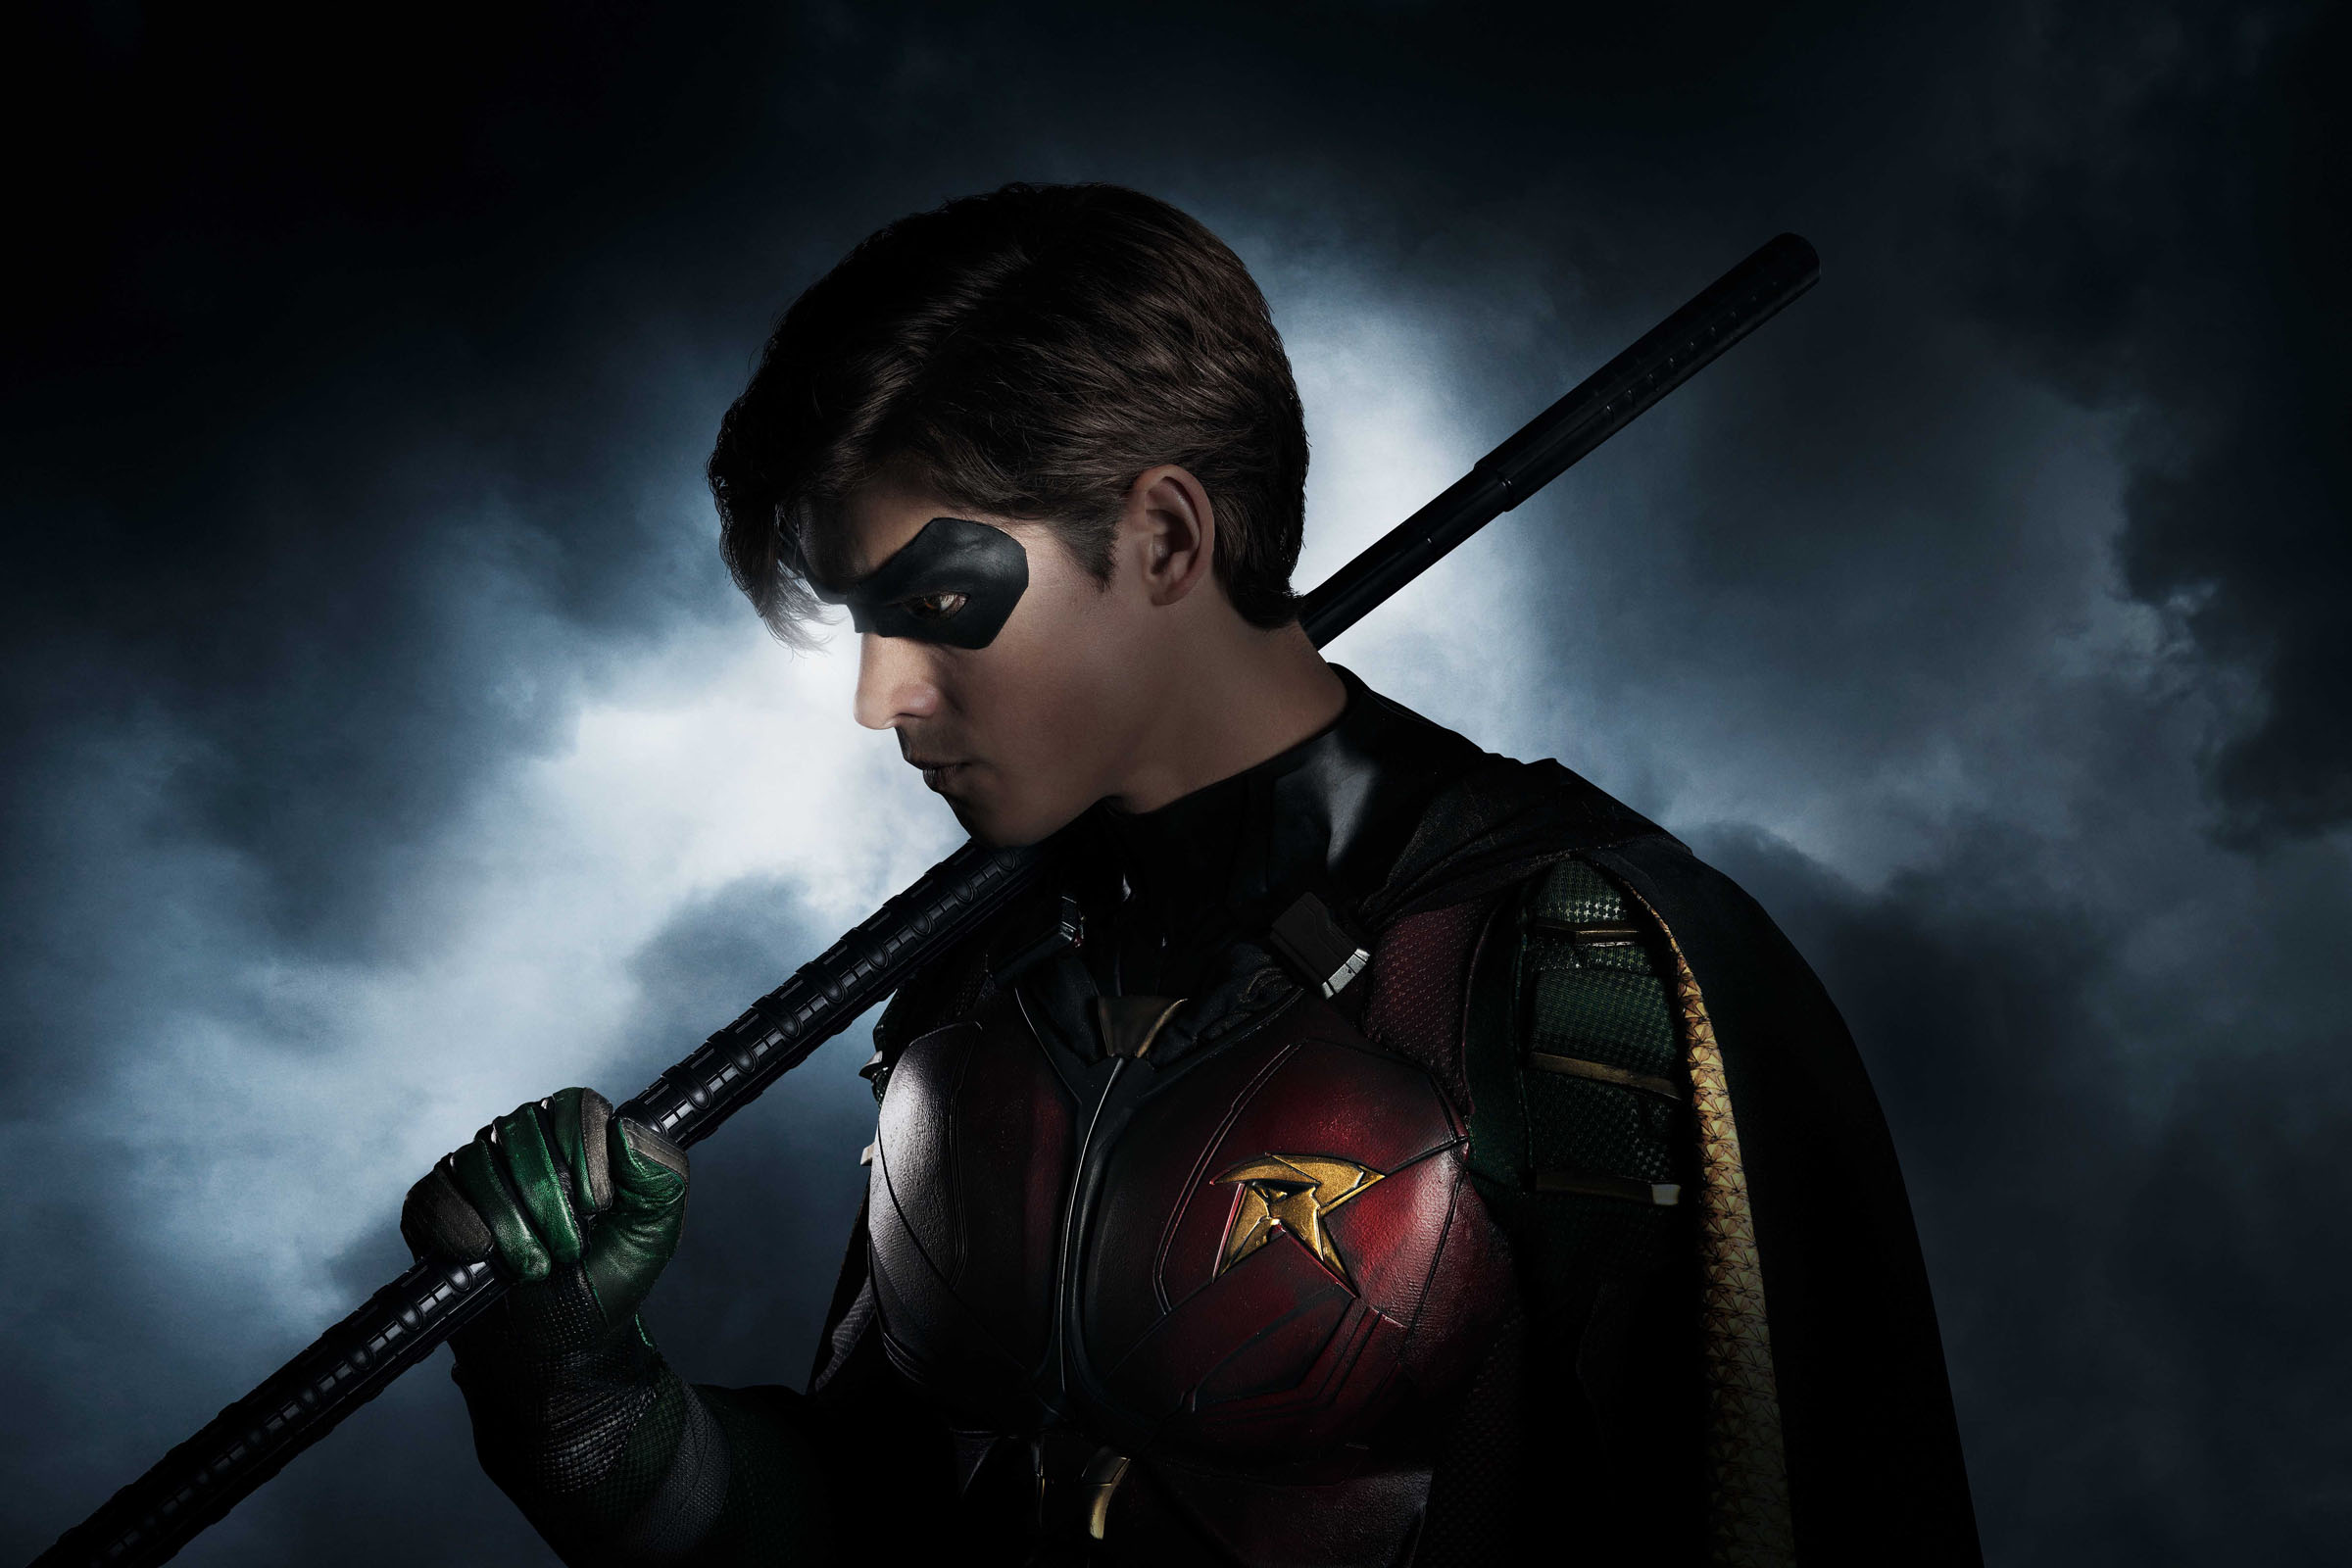 'Titans': Brenton Thwaites As Robin In DC Superhero Series